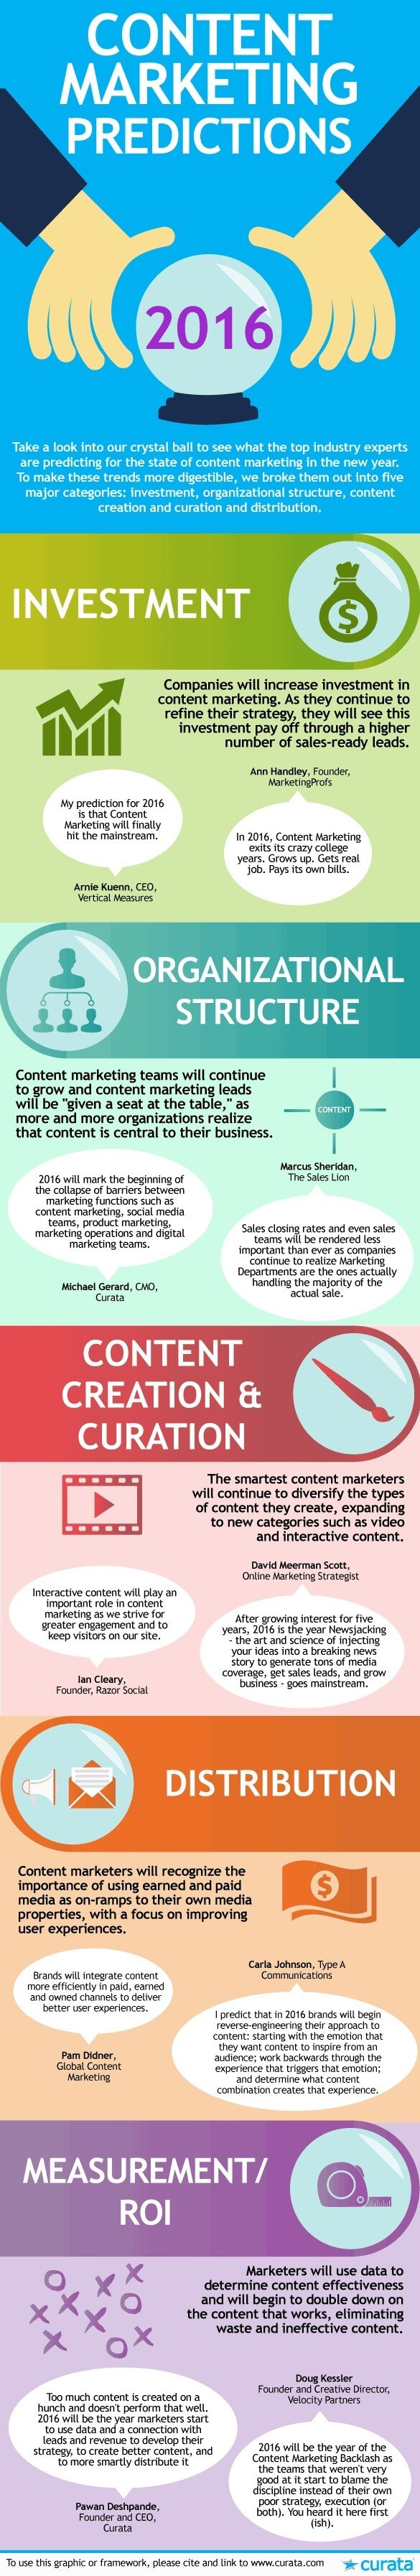 Content Marketing Prognosen 2016 - Expertenmeinungen - die Infographic